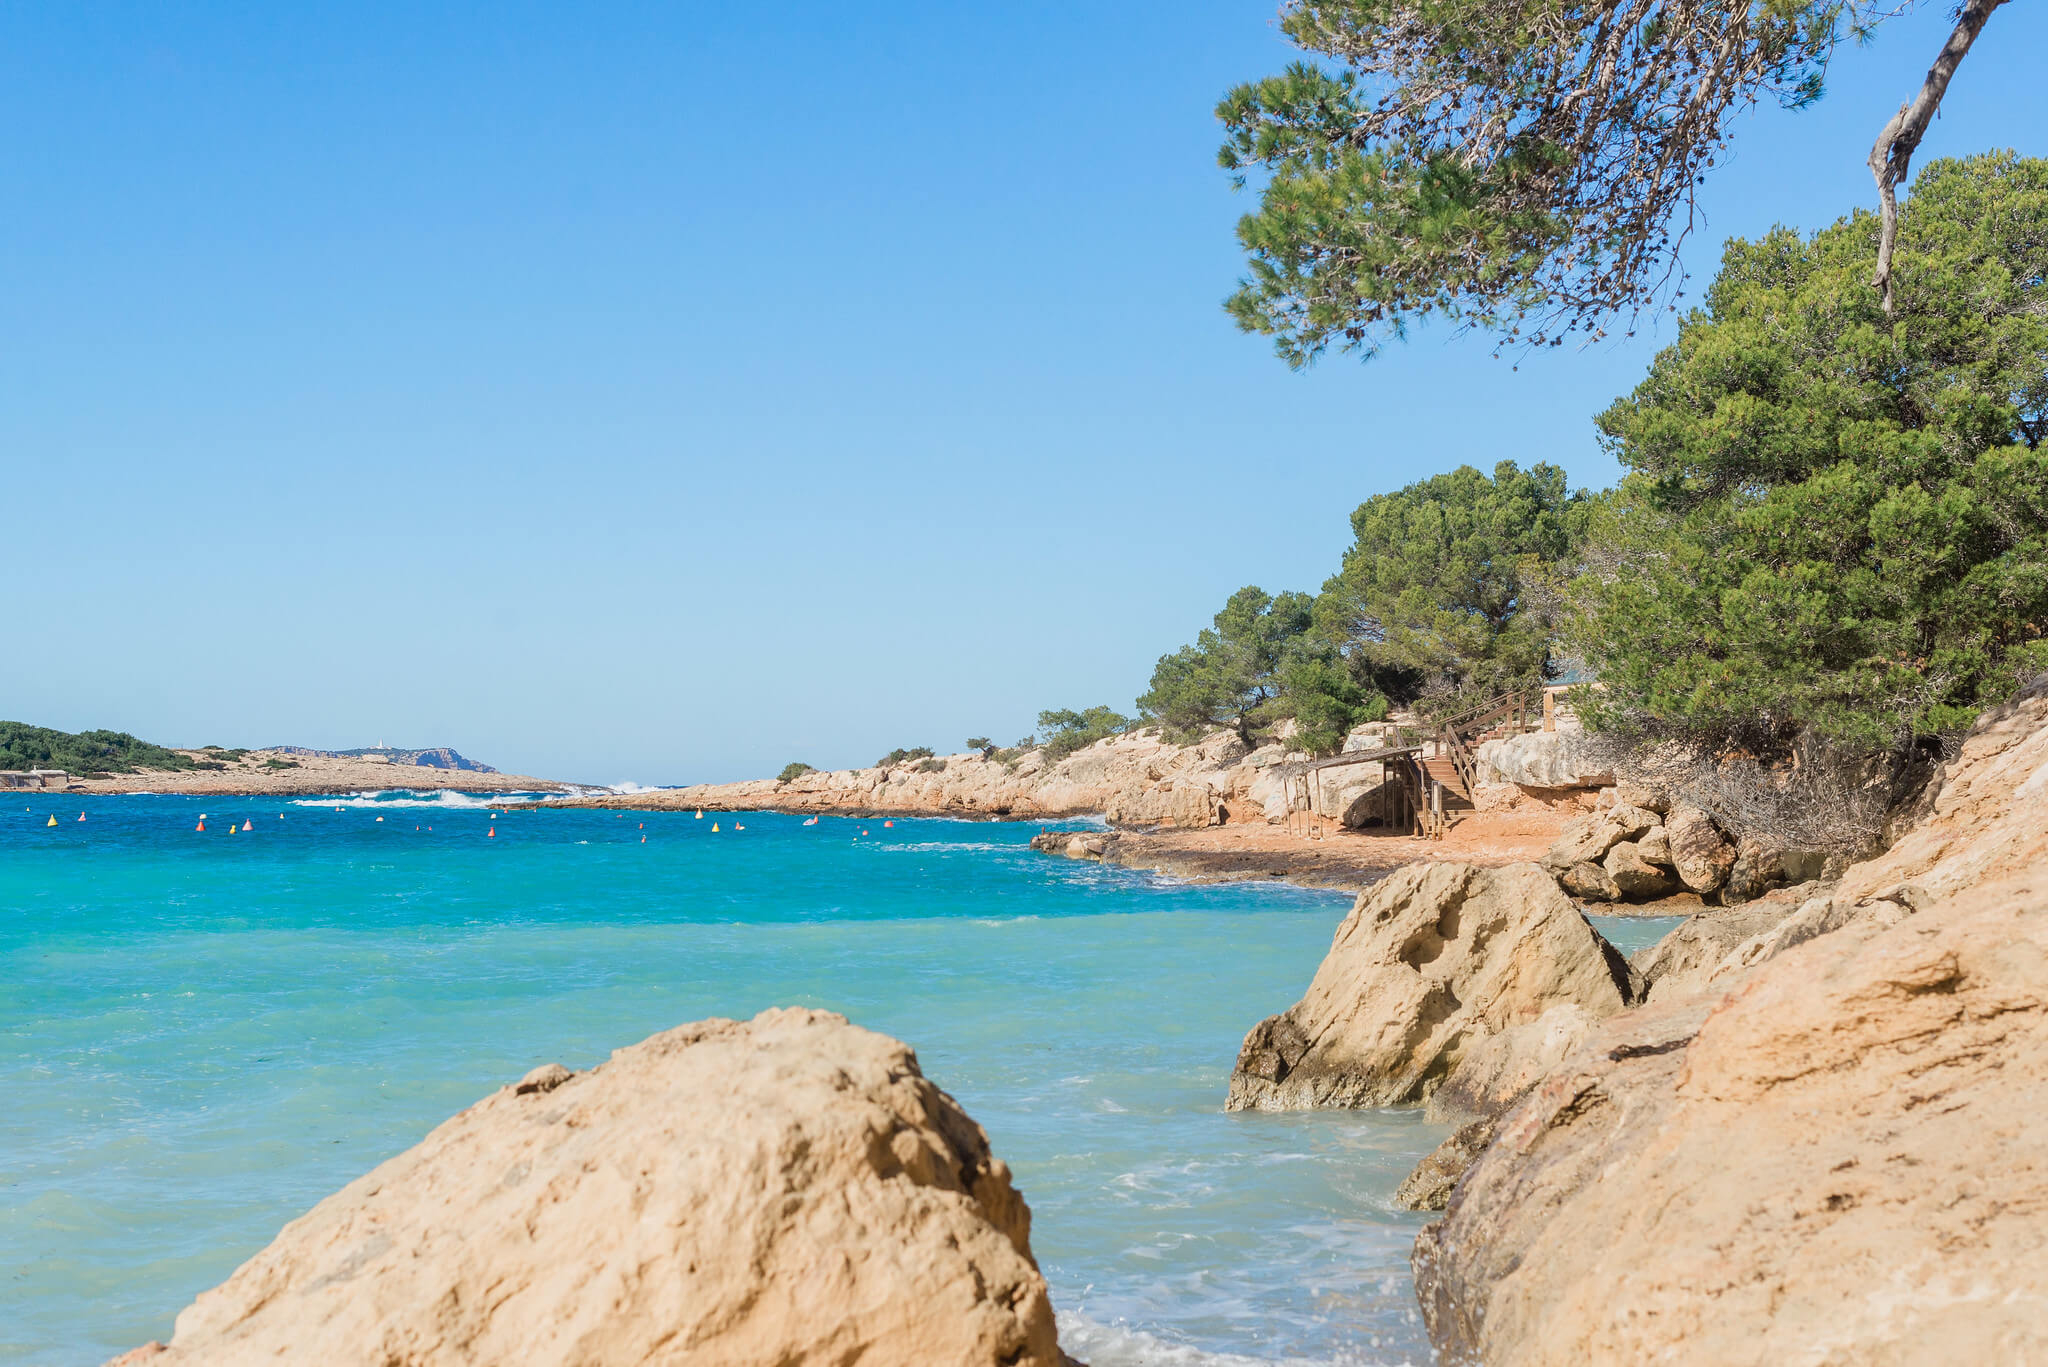 https://www.white-ibiza.com/wp-content/uploads/2020/03/ibiza-beaches-port-des-torrent-02.jpg